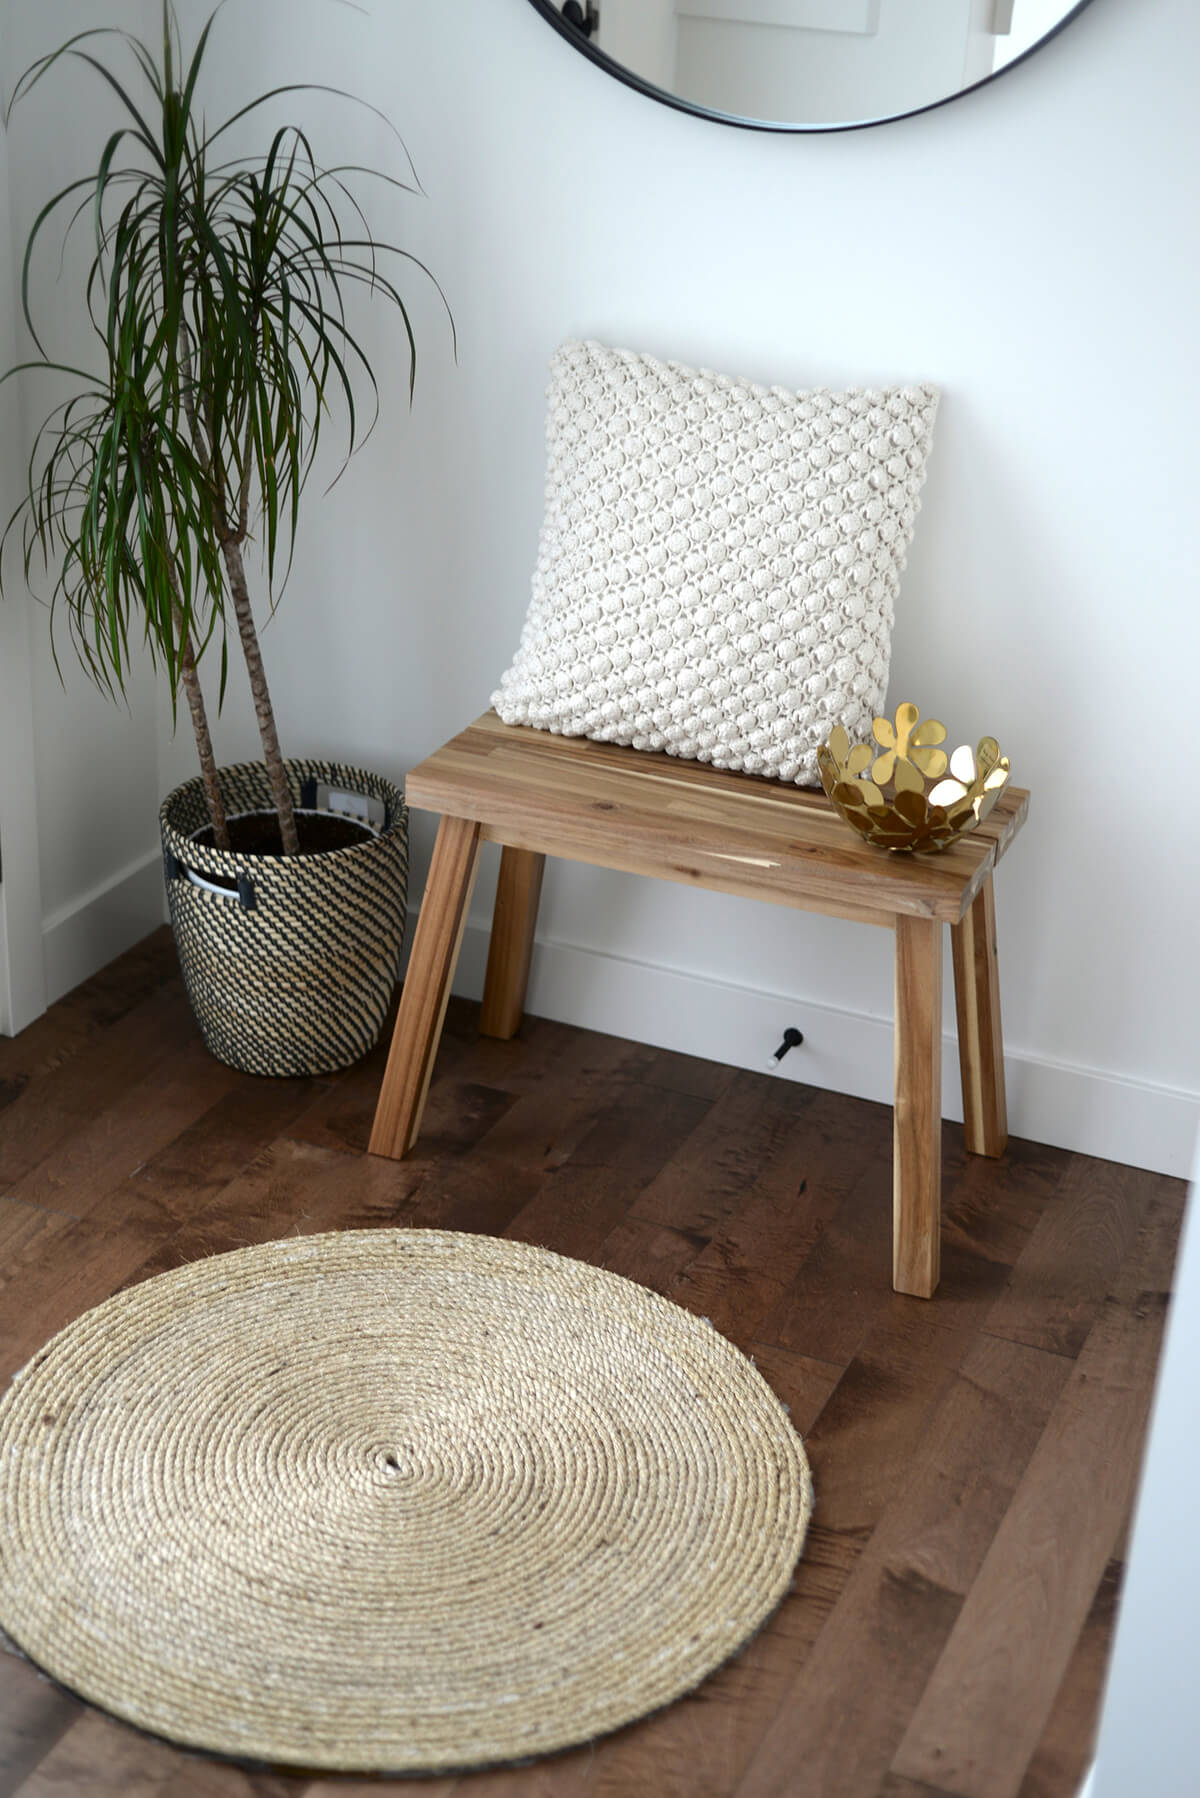 Small Entryway Wood Stool and Jute Rug